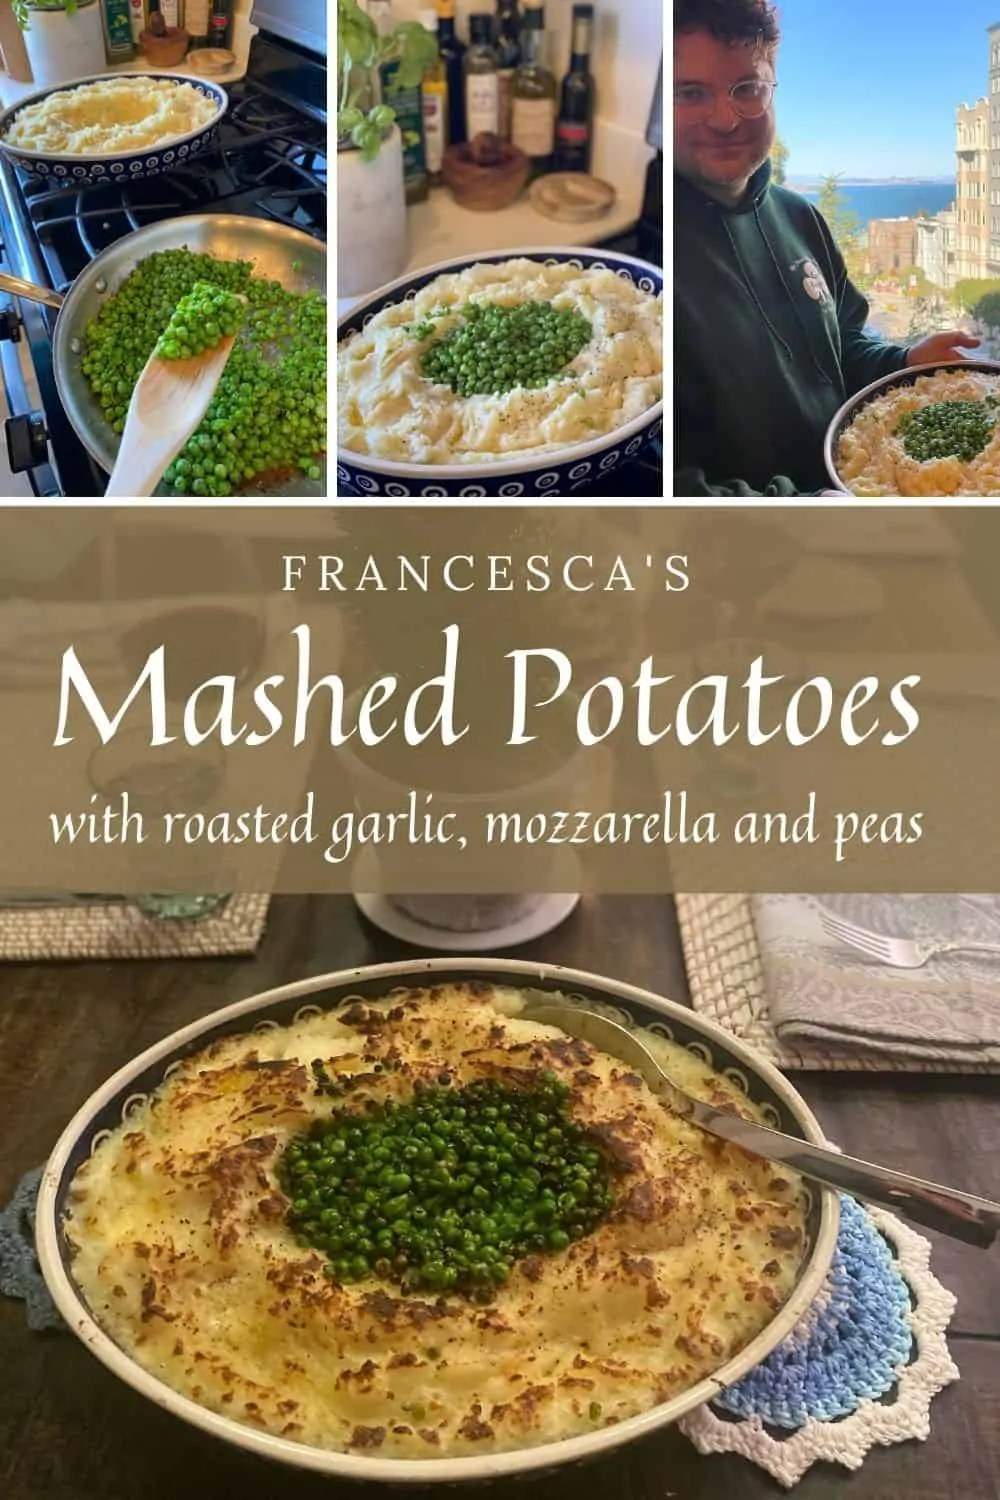 Mashed Potatoes with roasted garlic and peas